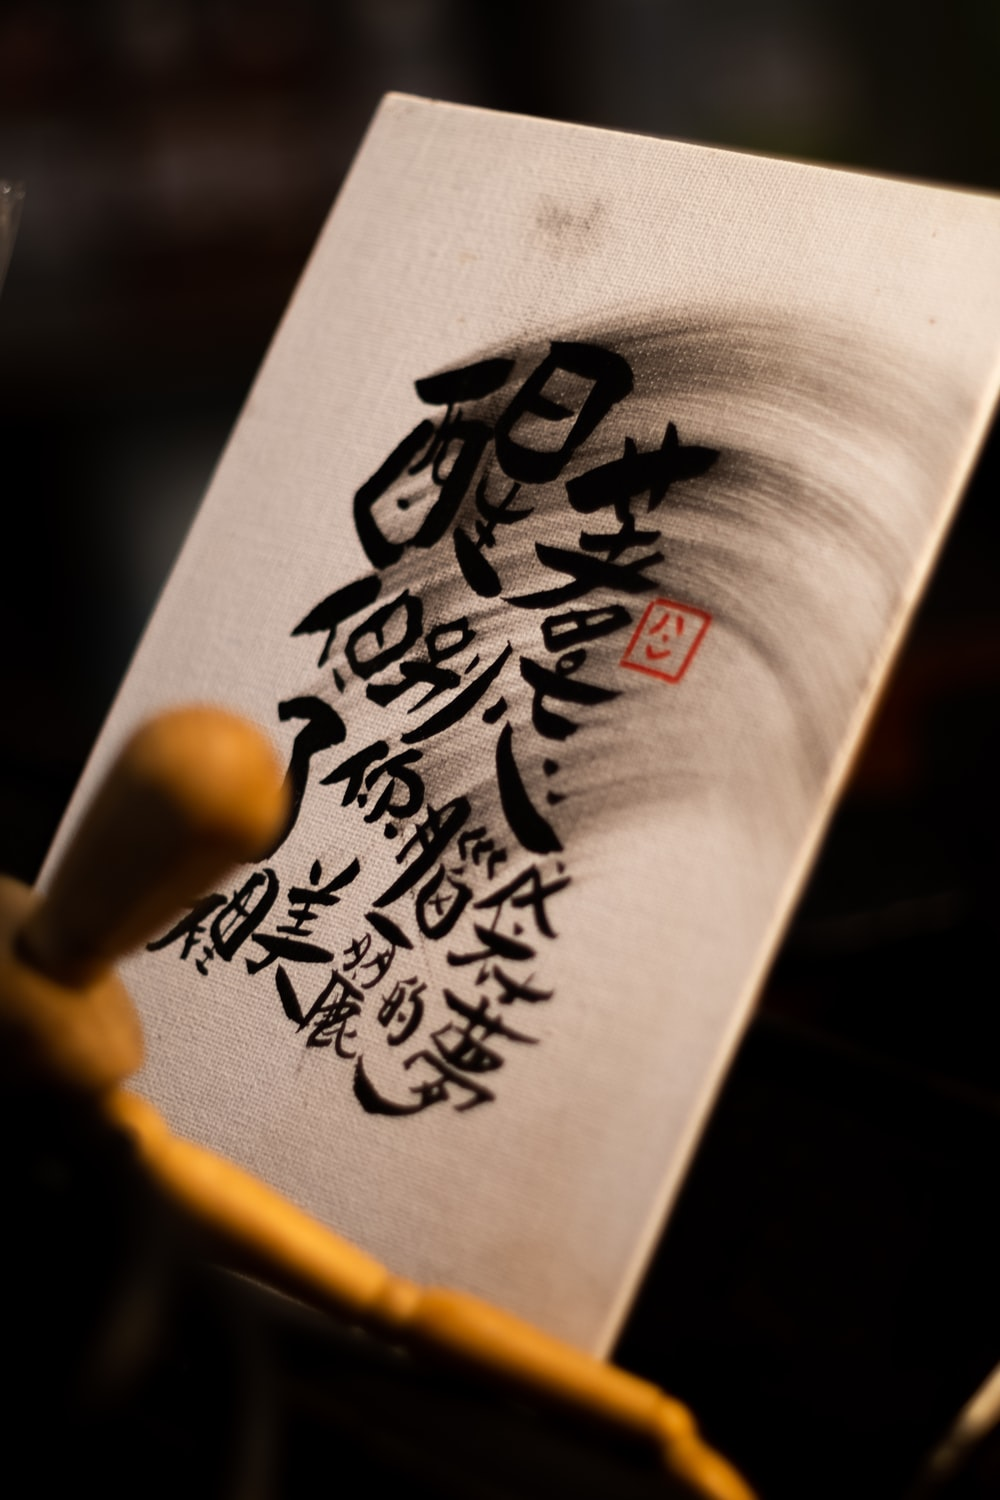 Japanese text on paper